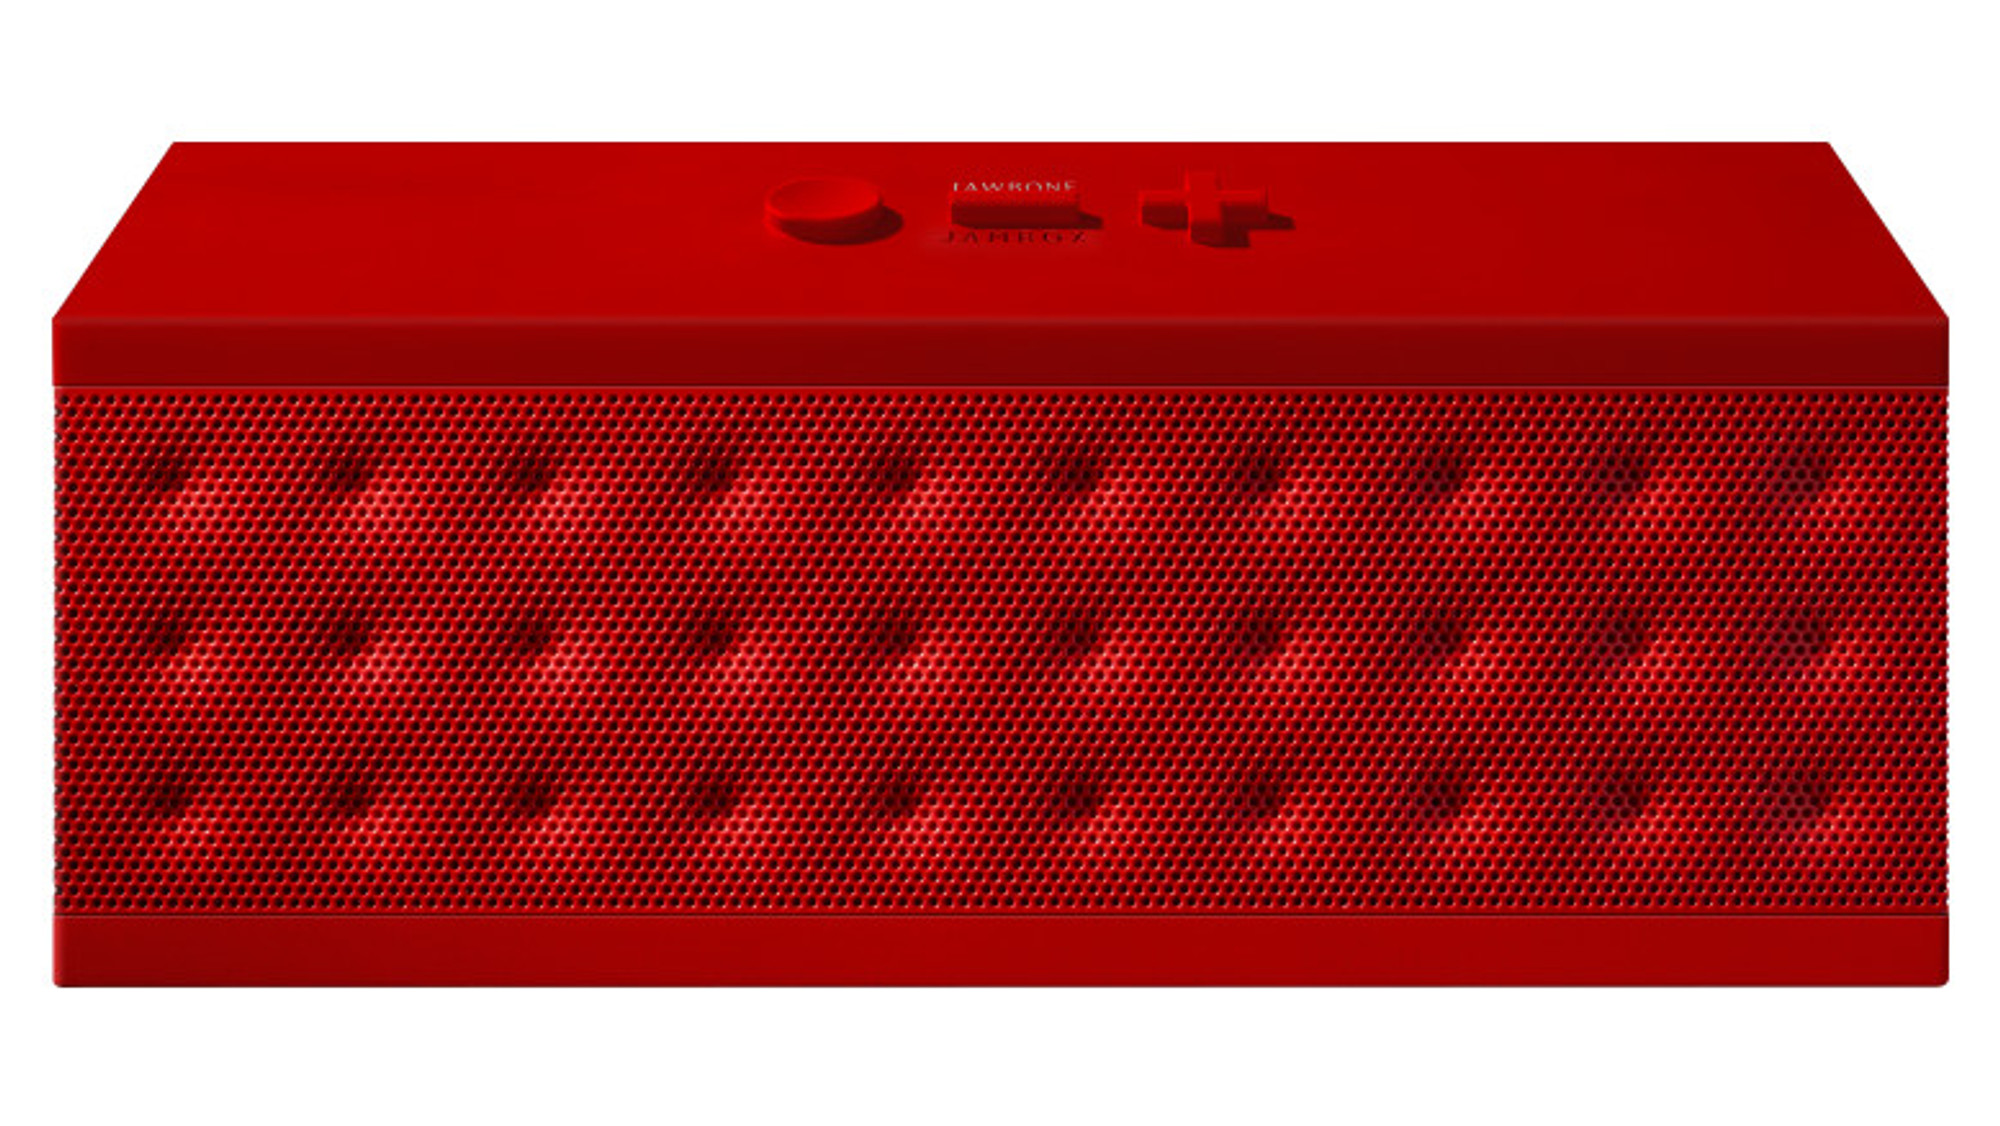 jawbone jambox red dot wireless speakers. Black Bedroom Furniture Sets. Home Design Ideas